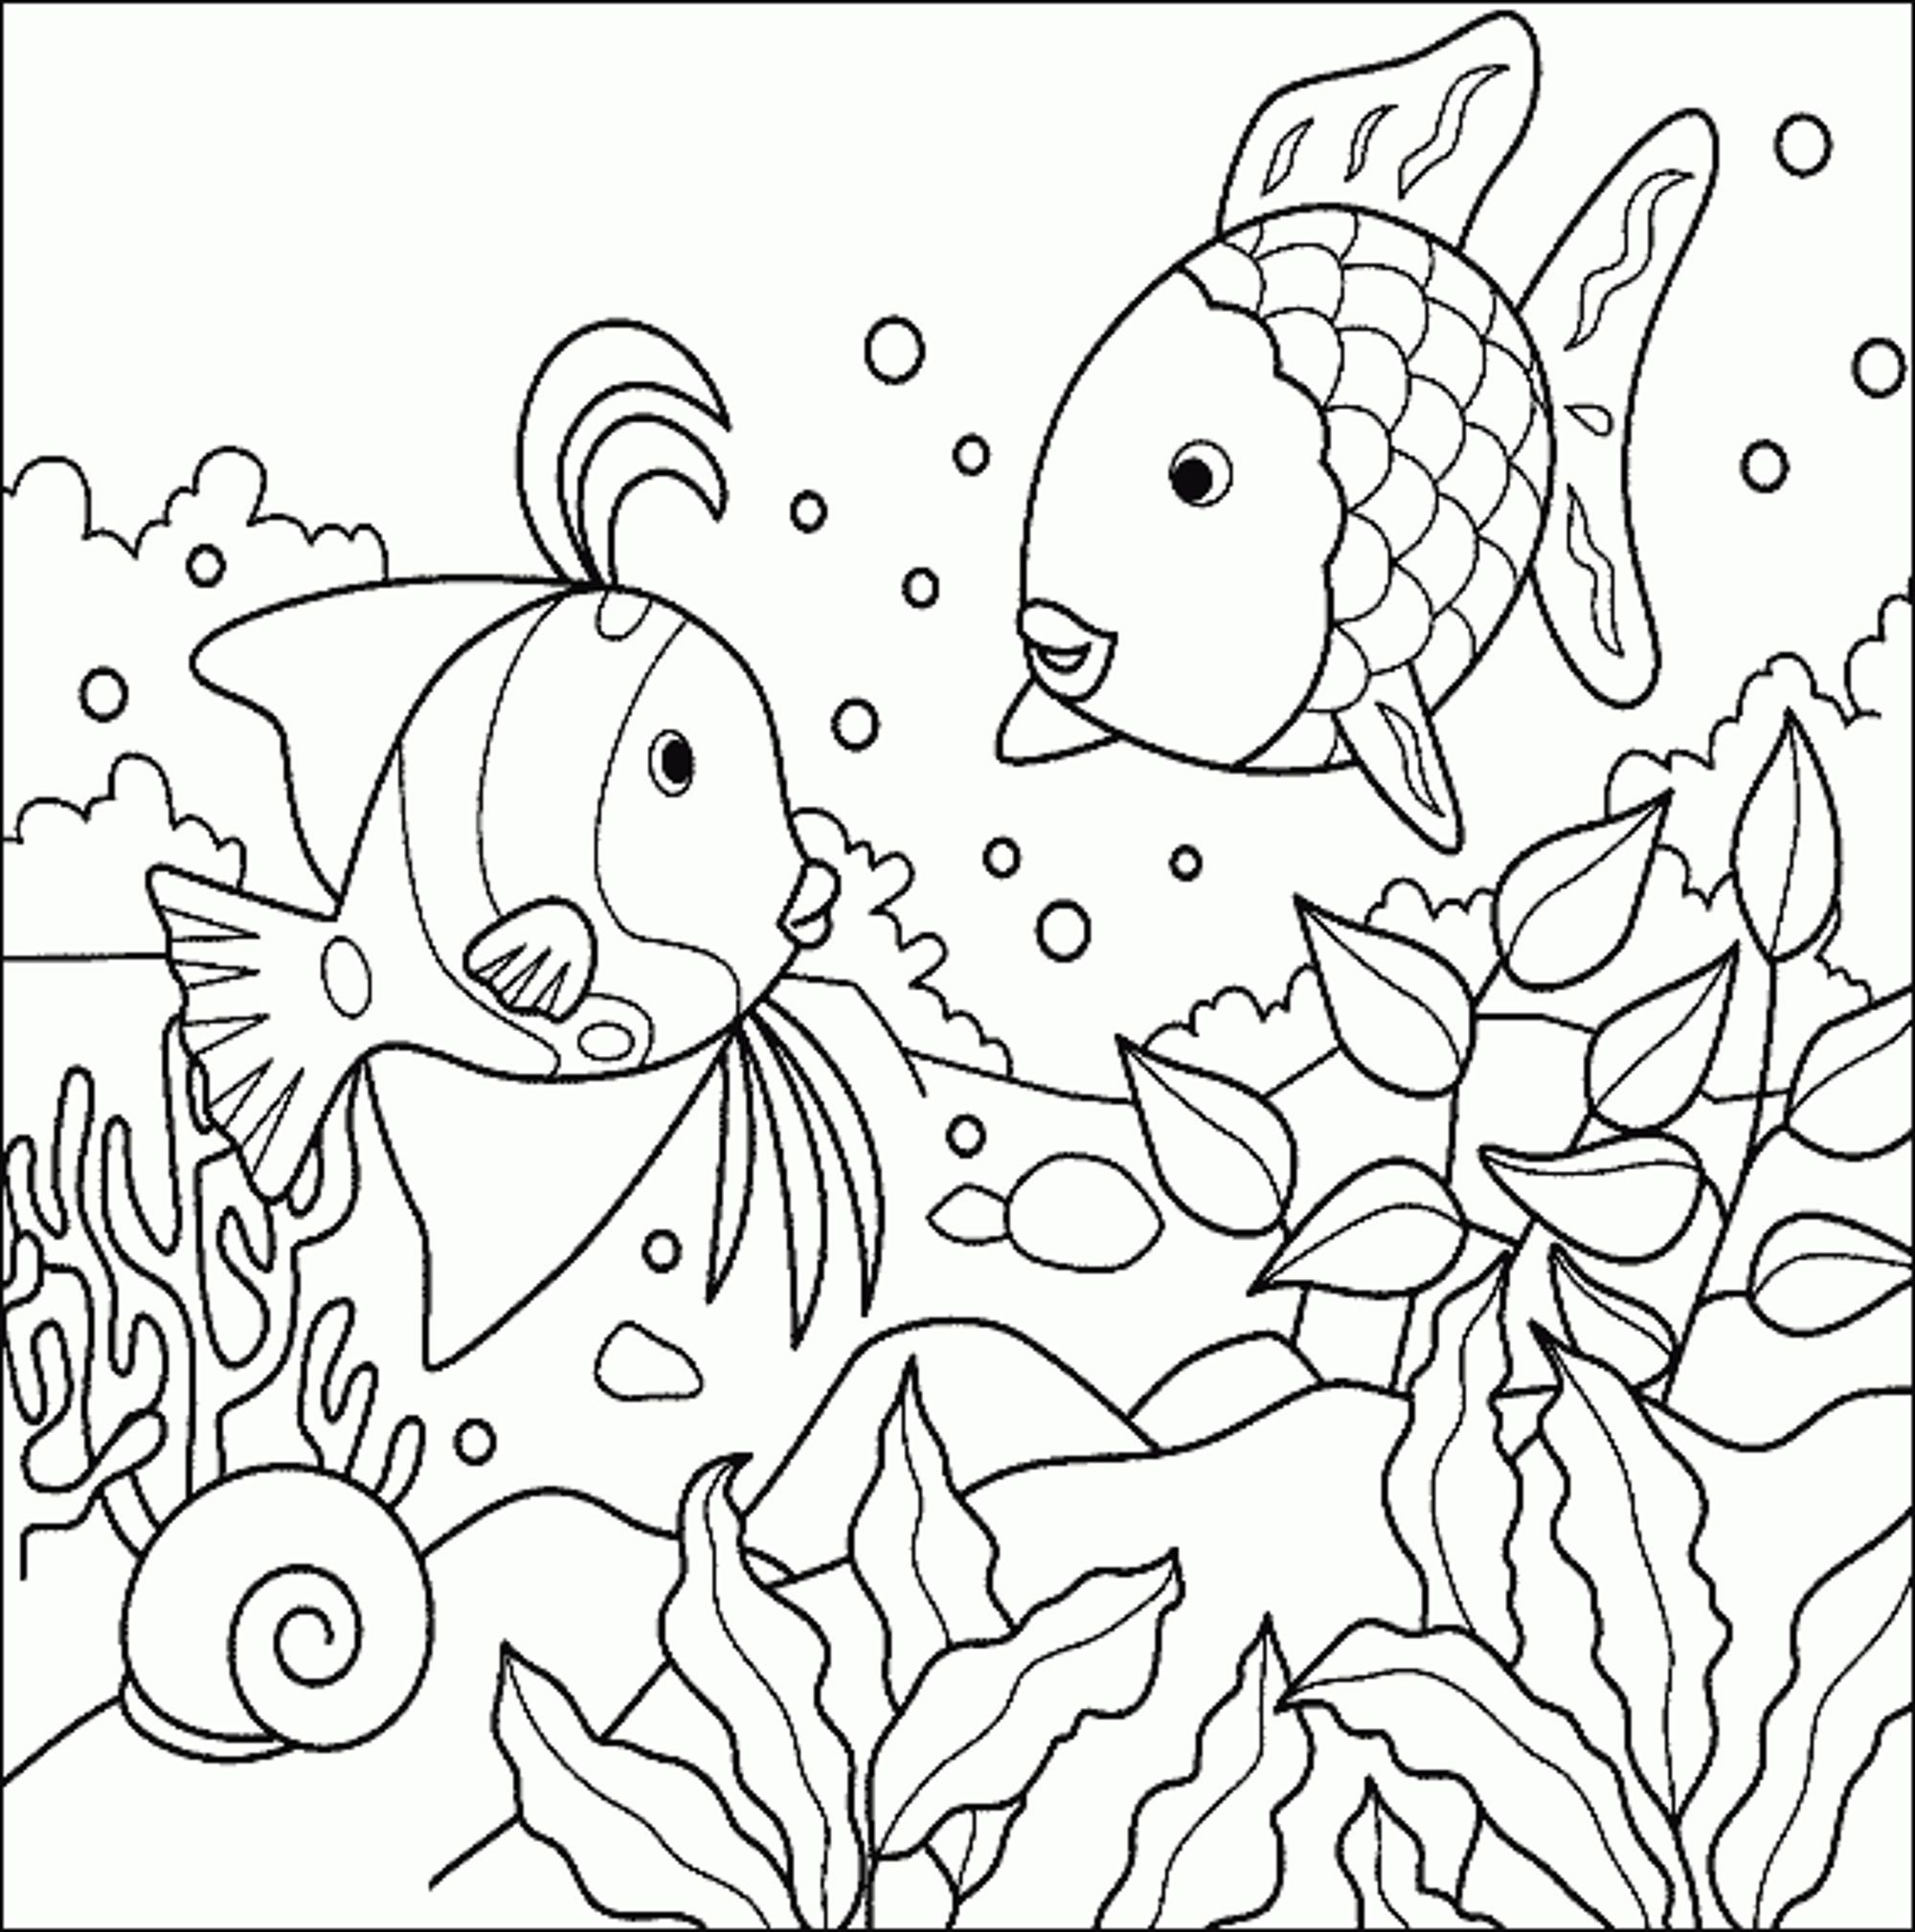 Fish Coloring Pages At | Projects to Try | Pinterest | Adult ...